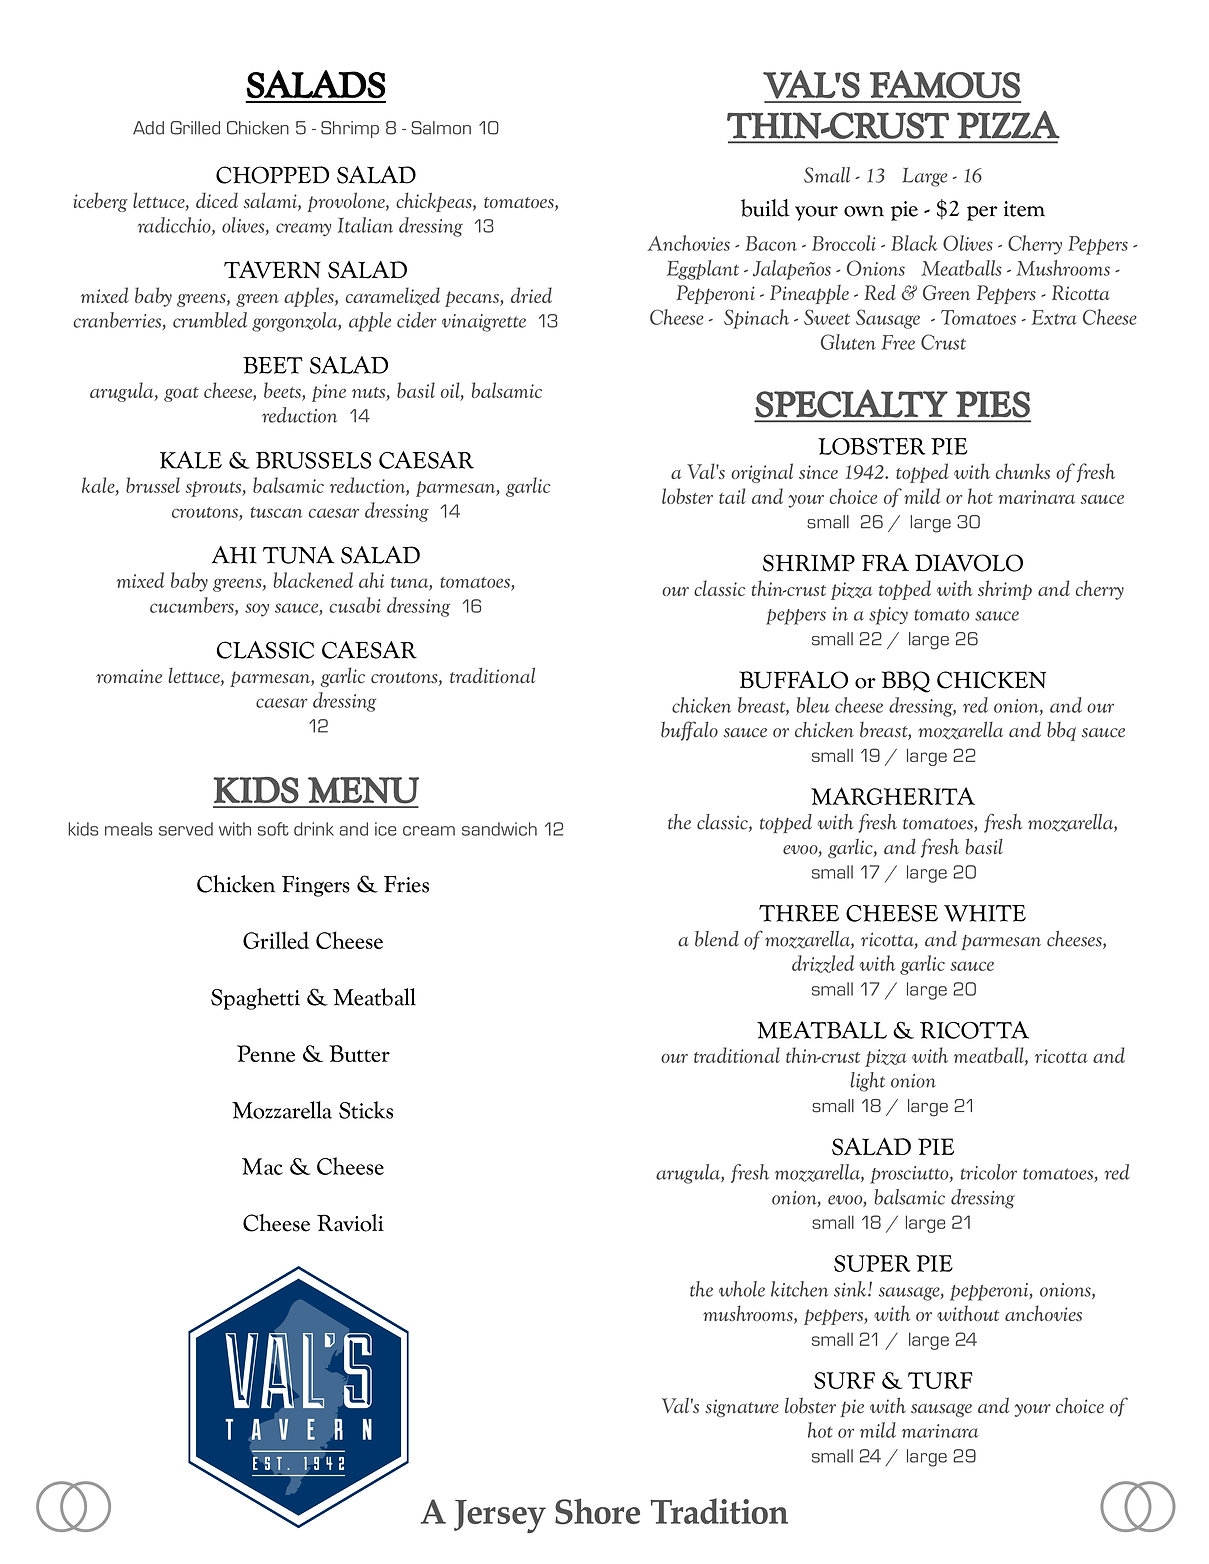 New Lunch Menu 11.17.20-2 copy.jpg